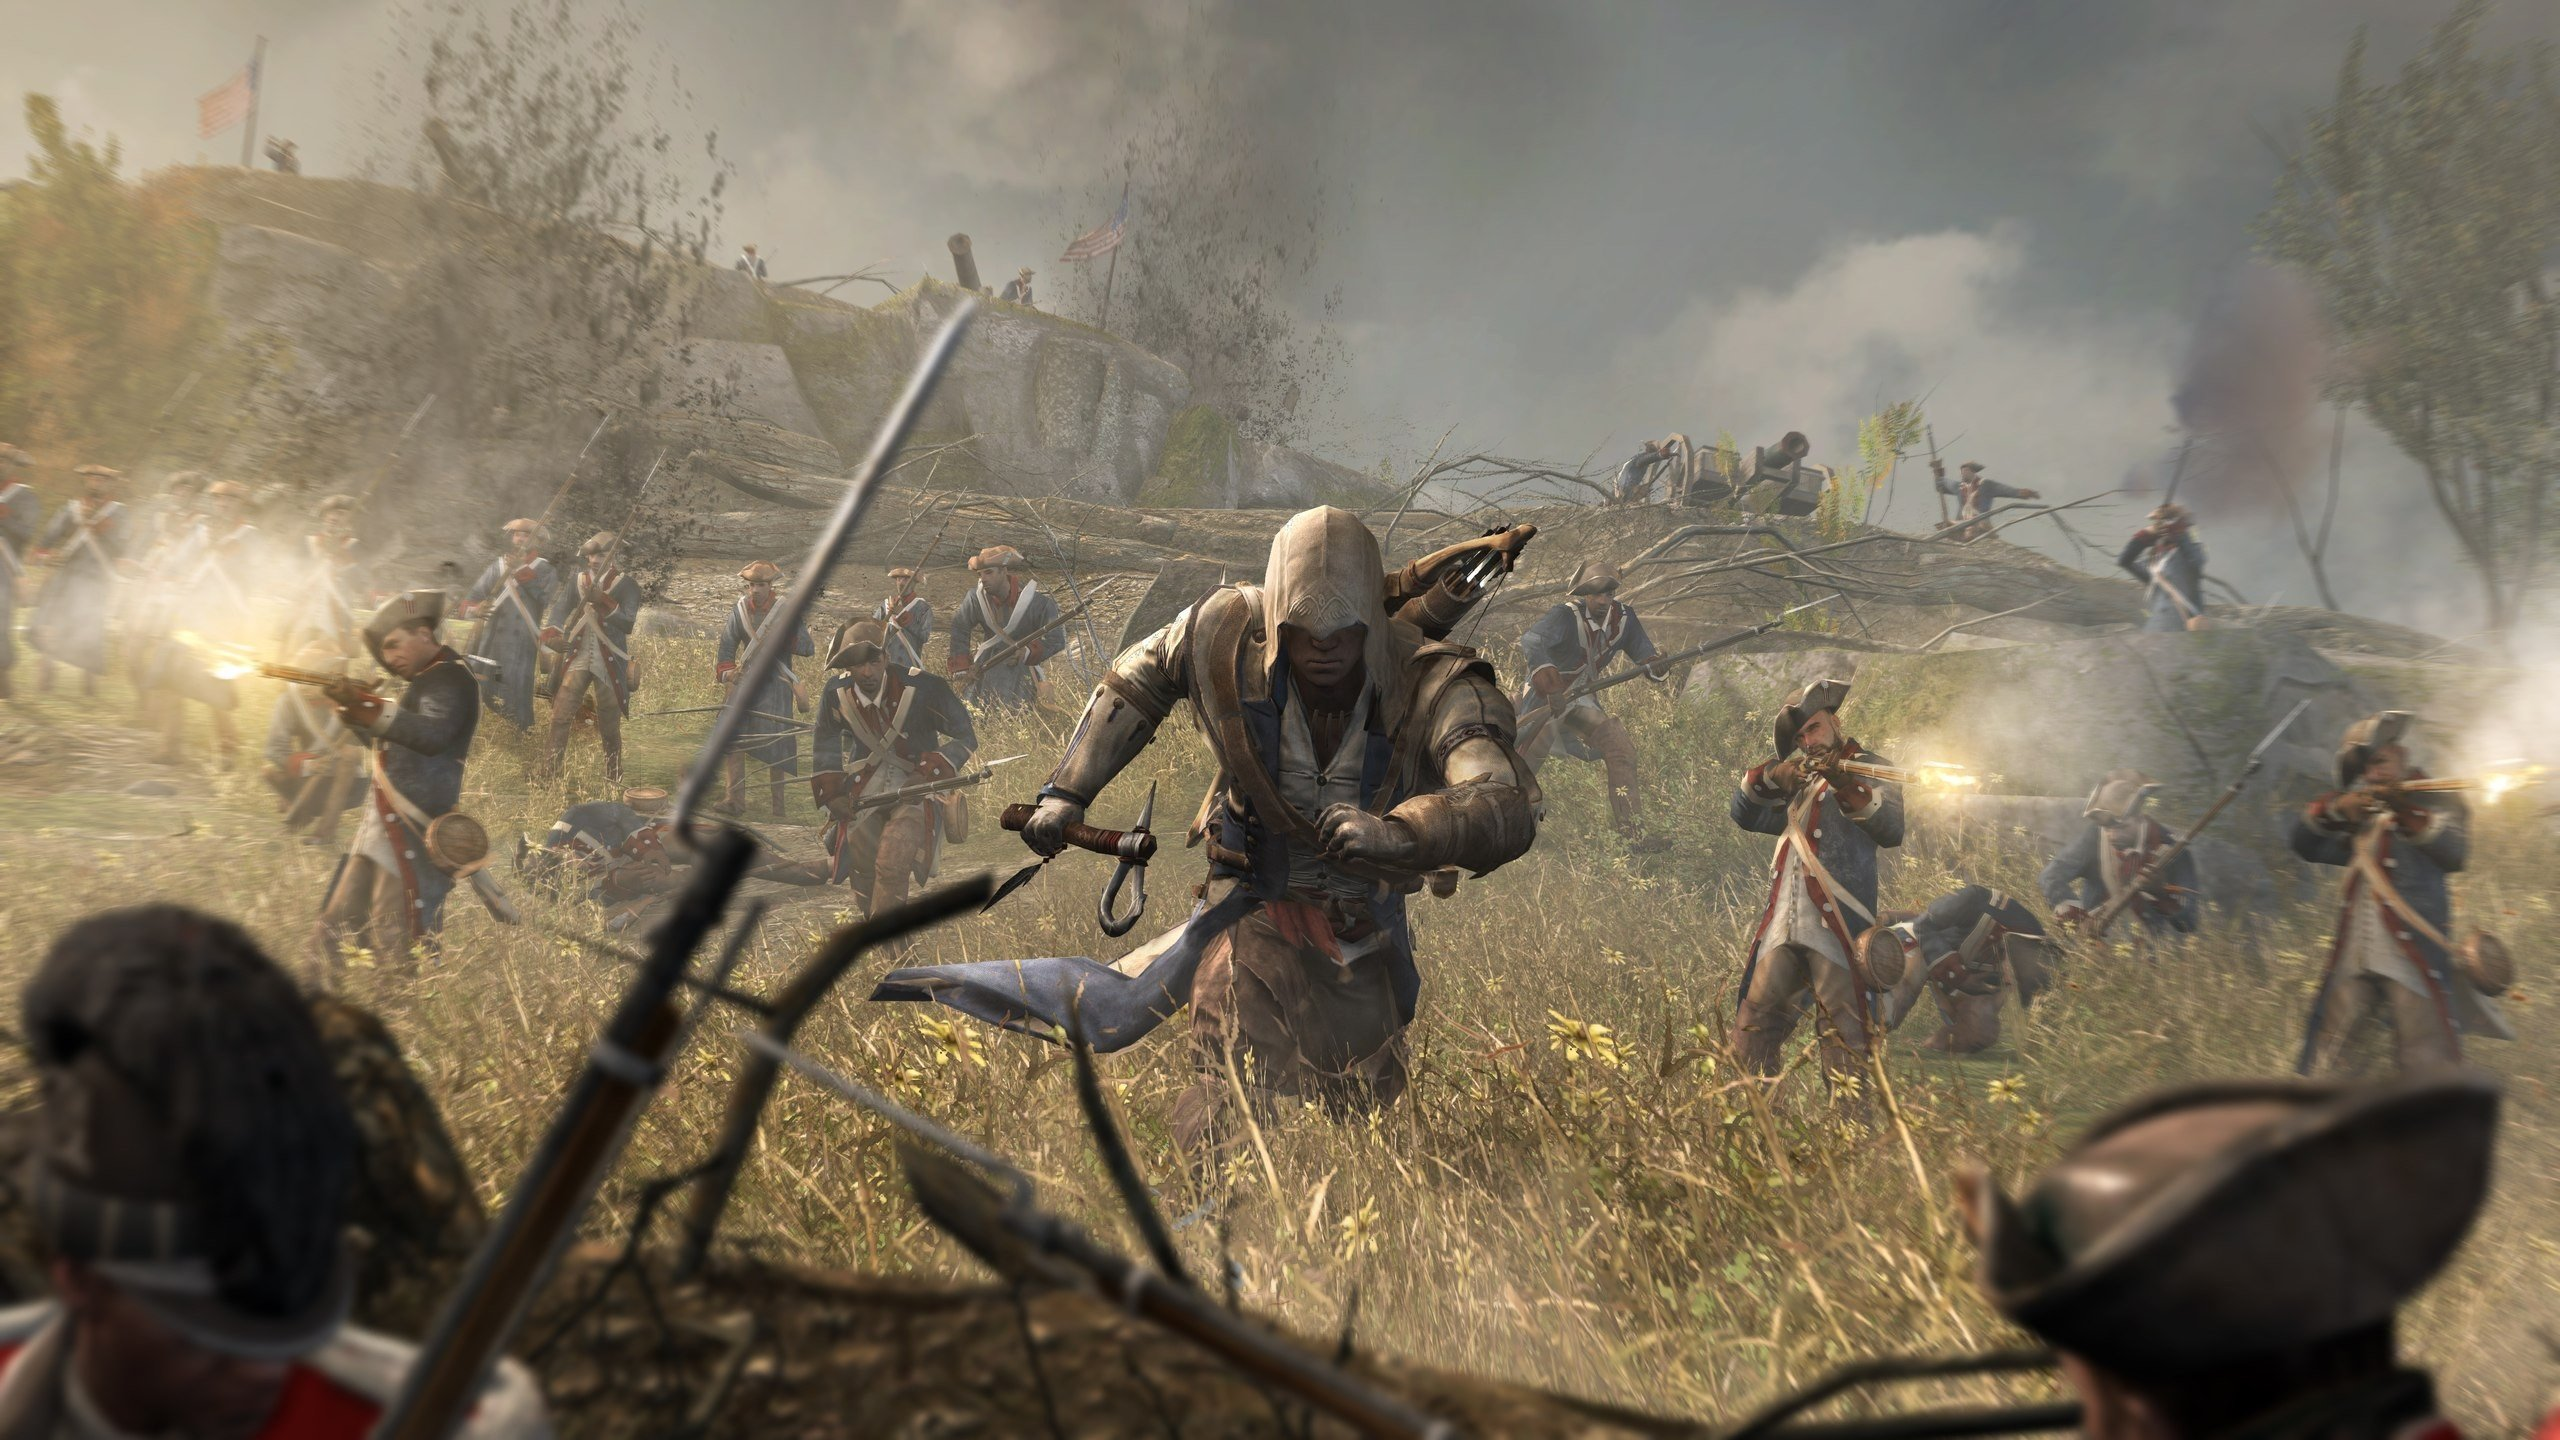 Free download assassins creed 3 wallpaper id447307 hd 2560x1440 for pc voltagebd Gallery